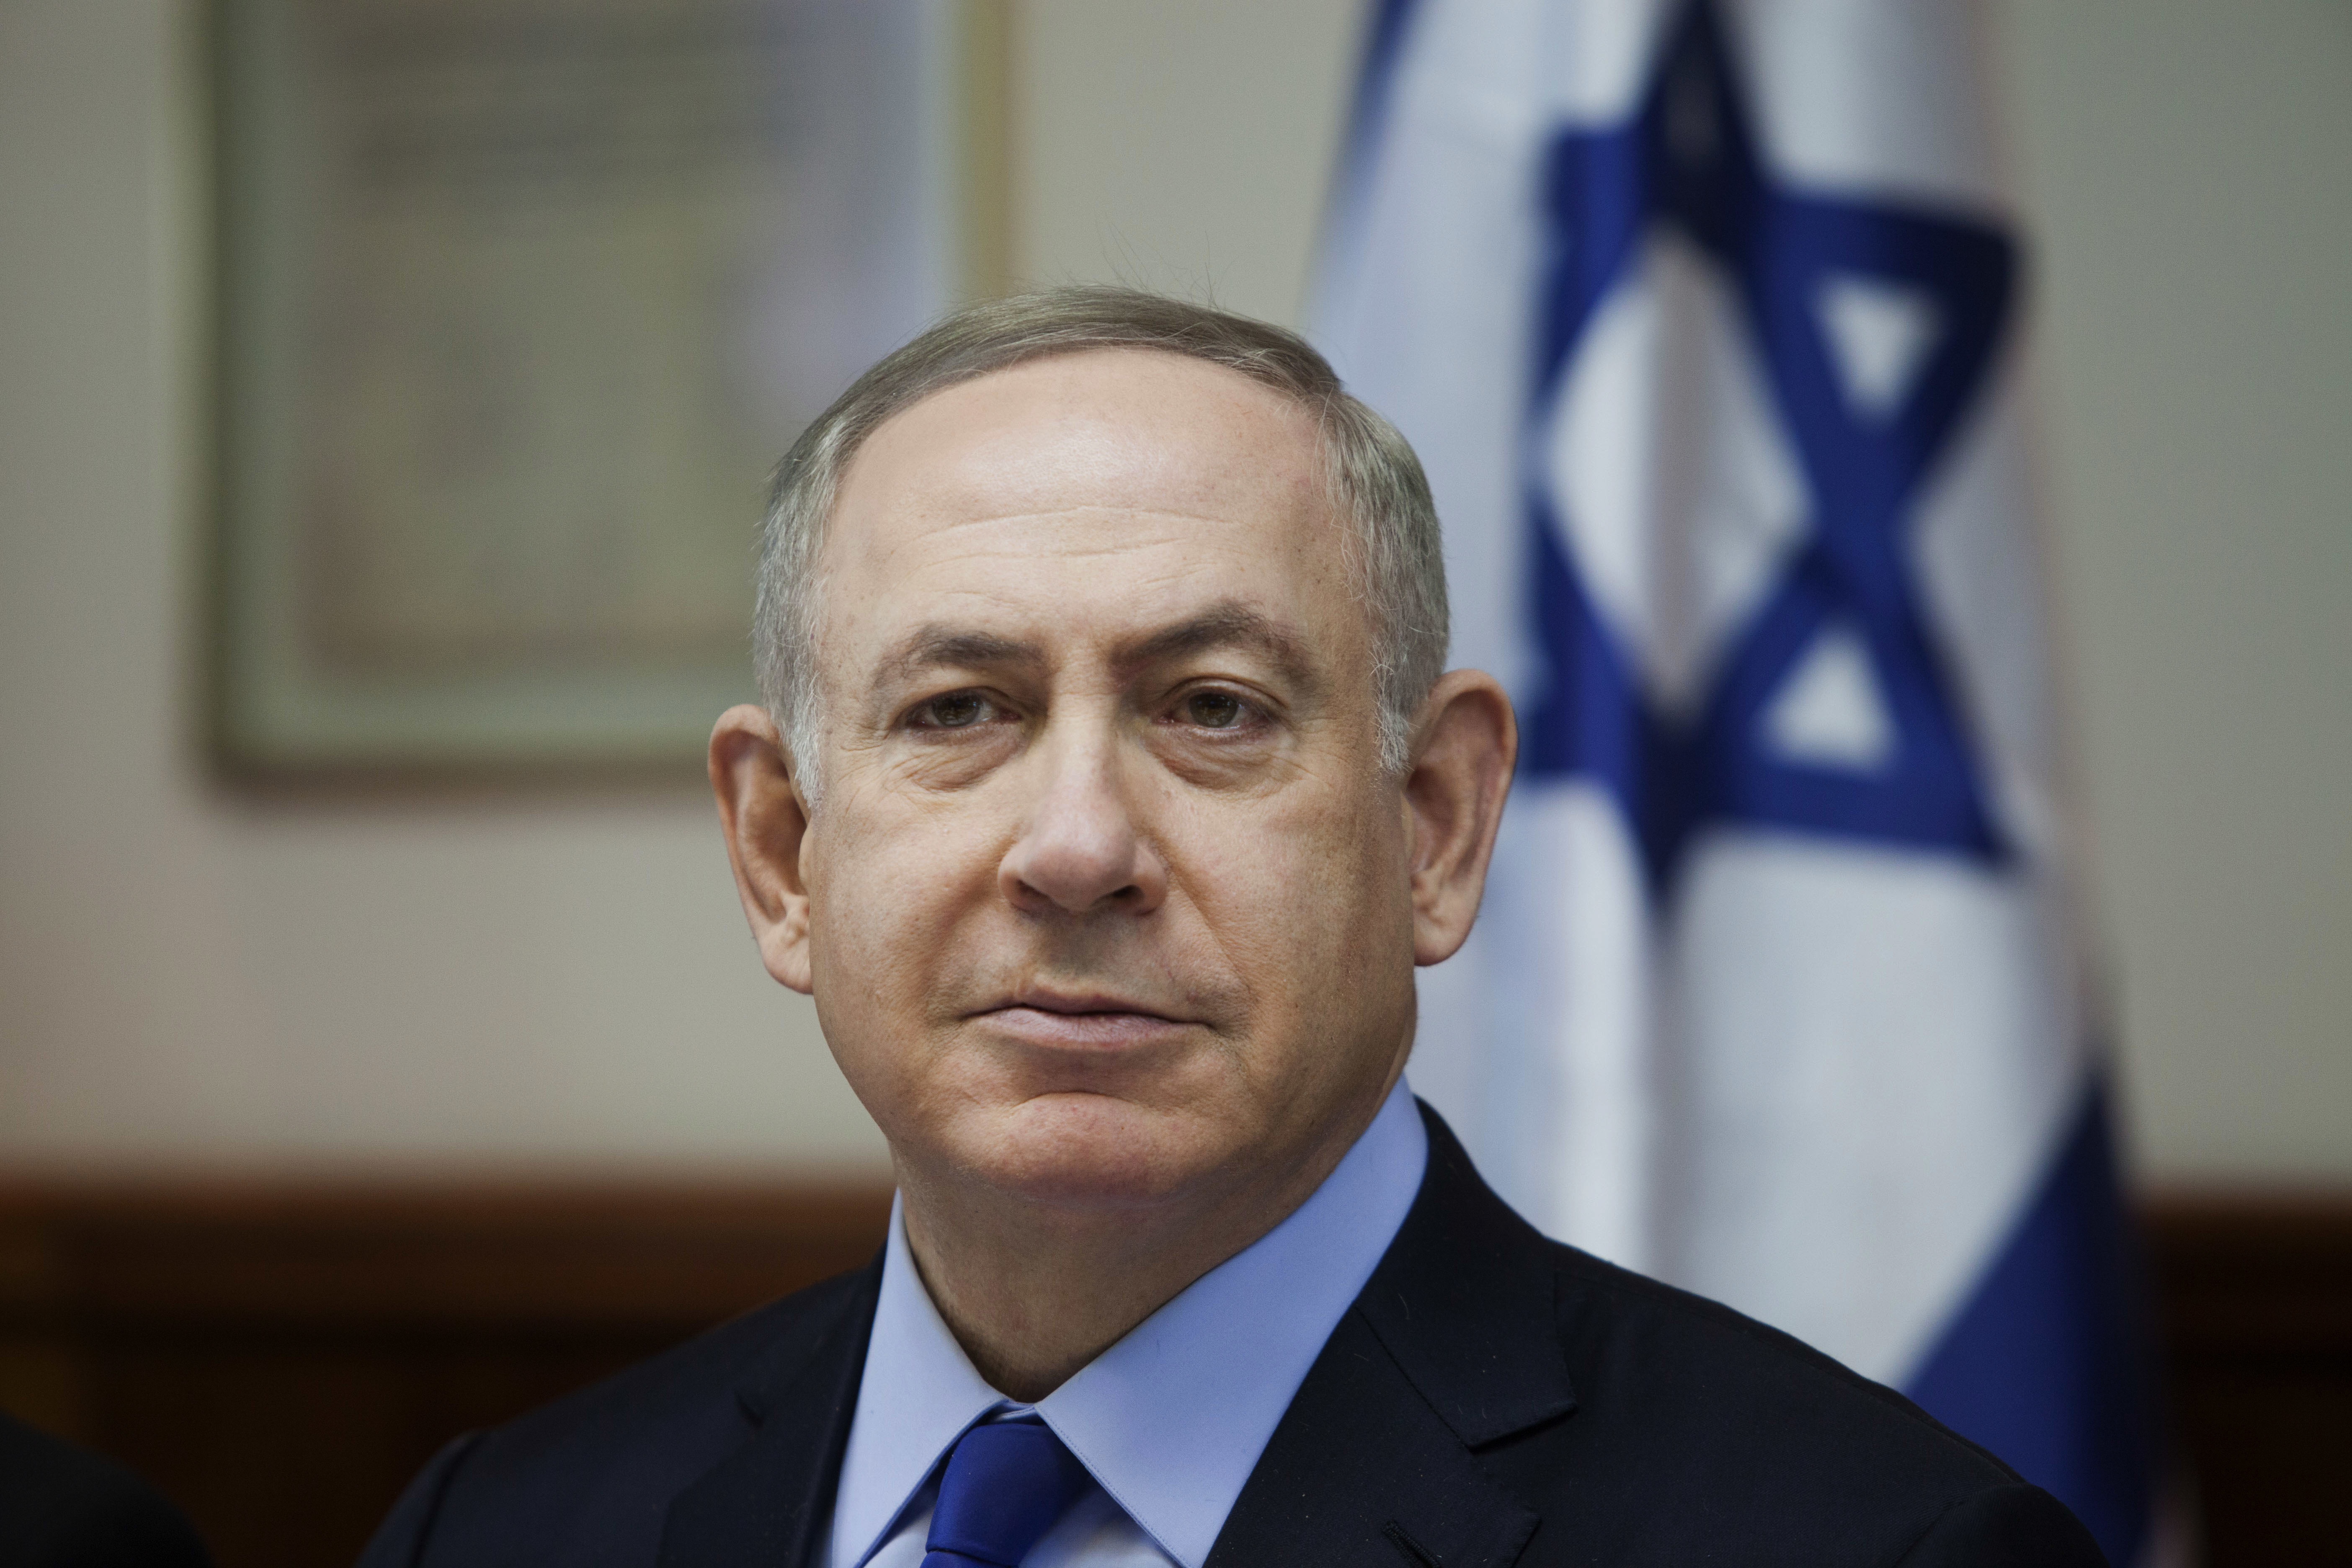 FILE -- In this Sunday, Dec. 25, 2016 file photo, Israeli Prime Minister Benjamin Netanyahu attends a weekly cabinet meeting in Jerusalem. Israel is stepping up its attacks on the Obama administration, saying it has proof from Arab sources that the U.S. actively helped craft a U.N. resolution that declared Israeli settlements illegal. A spokesman for Prime Minister Benjamin Netanyahu says Israel has  ironclad information  that the White House helped draft the language of the resolution. Citing Arab sources, he says the White House  pushed hard  for its passage. (Dan Balilty/Pool photo via AP, File)